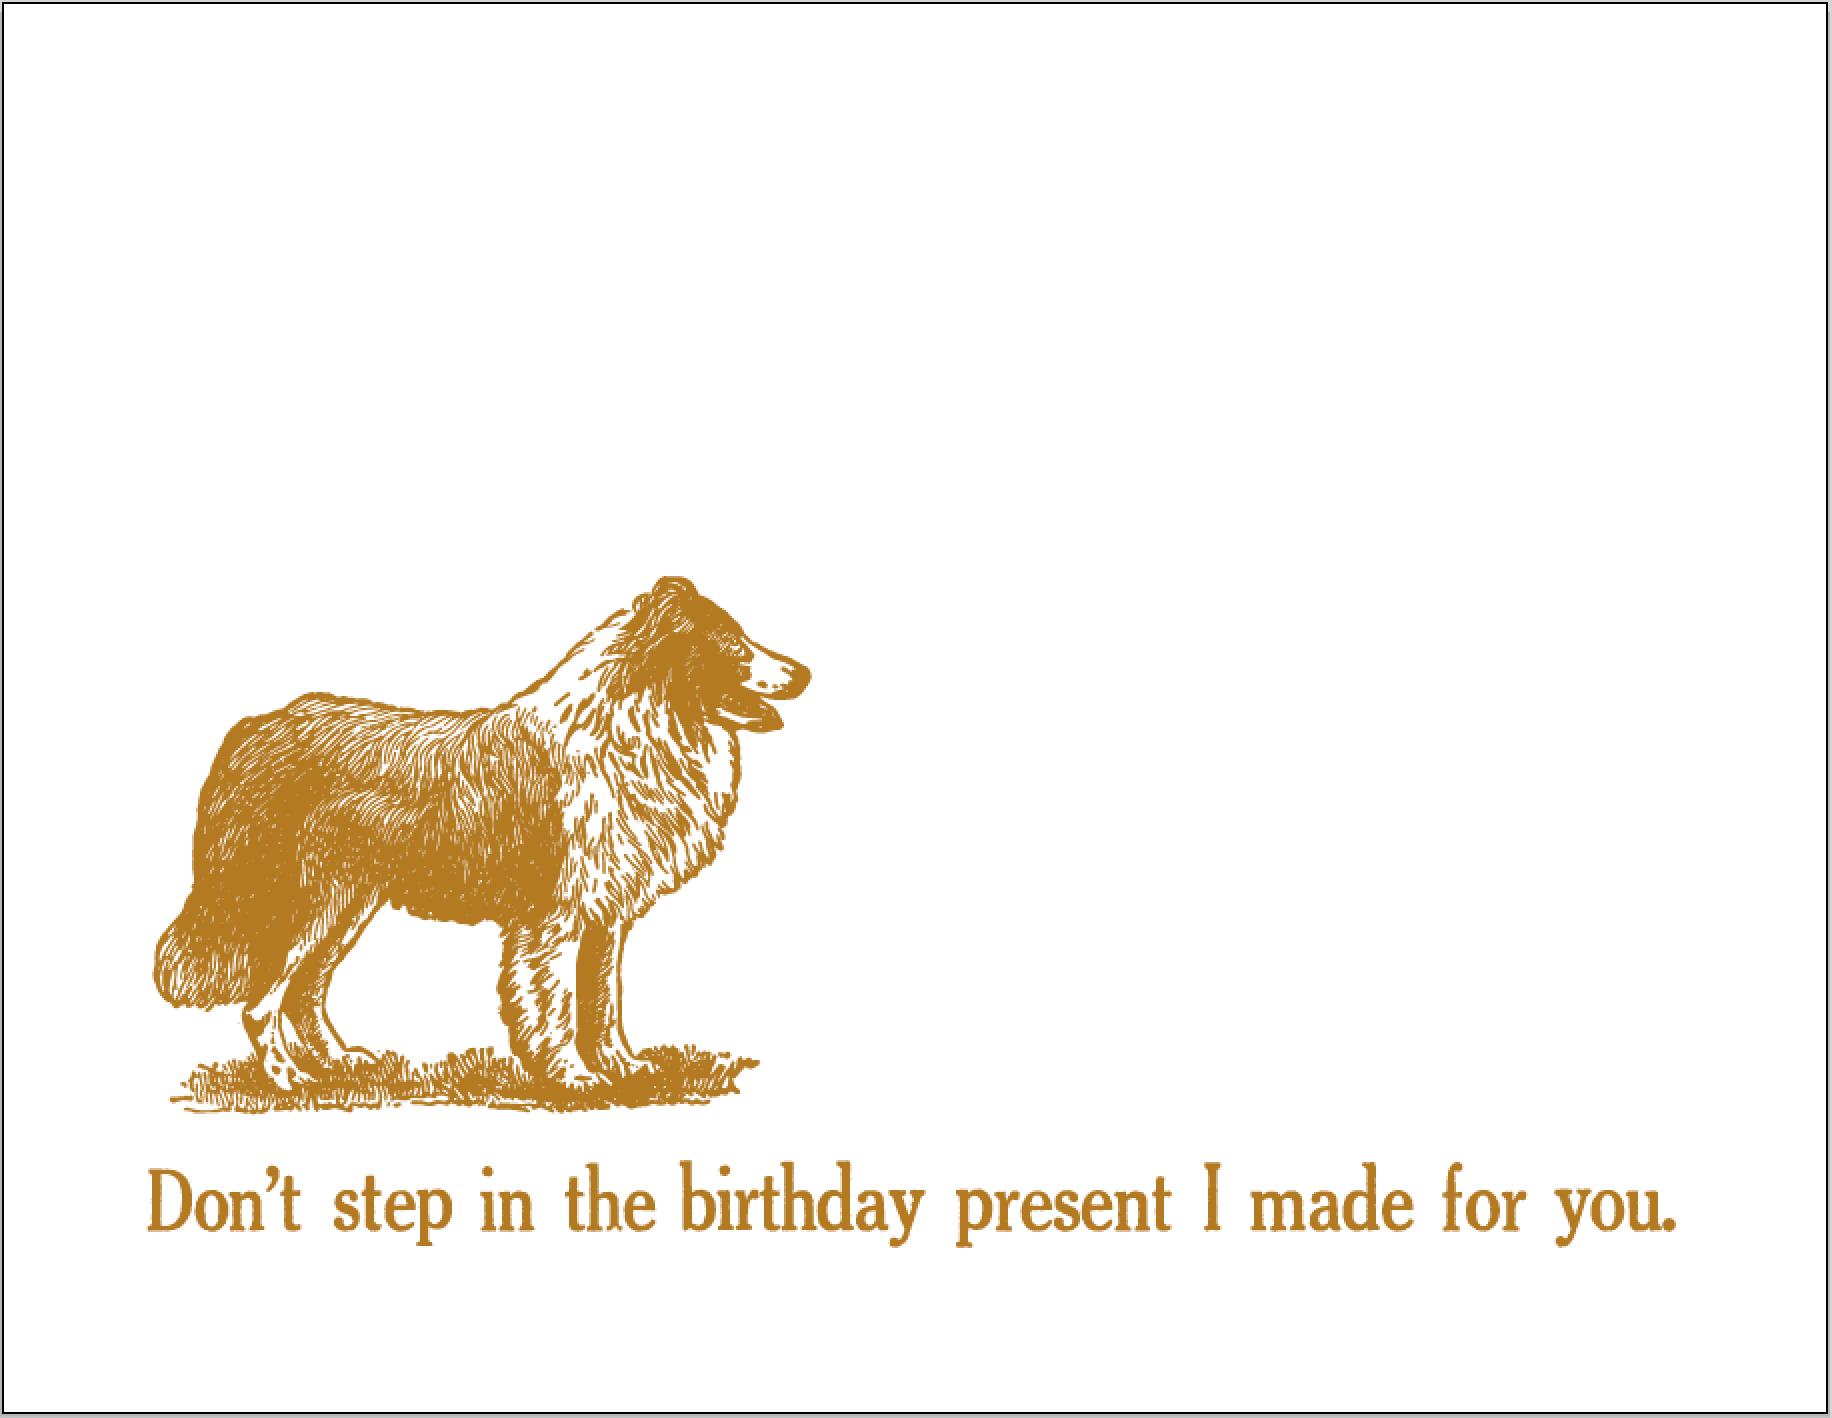 dont step in the birthday present I made for you